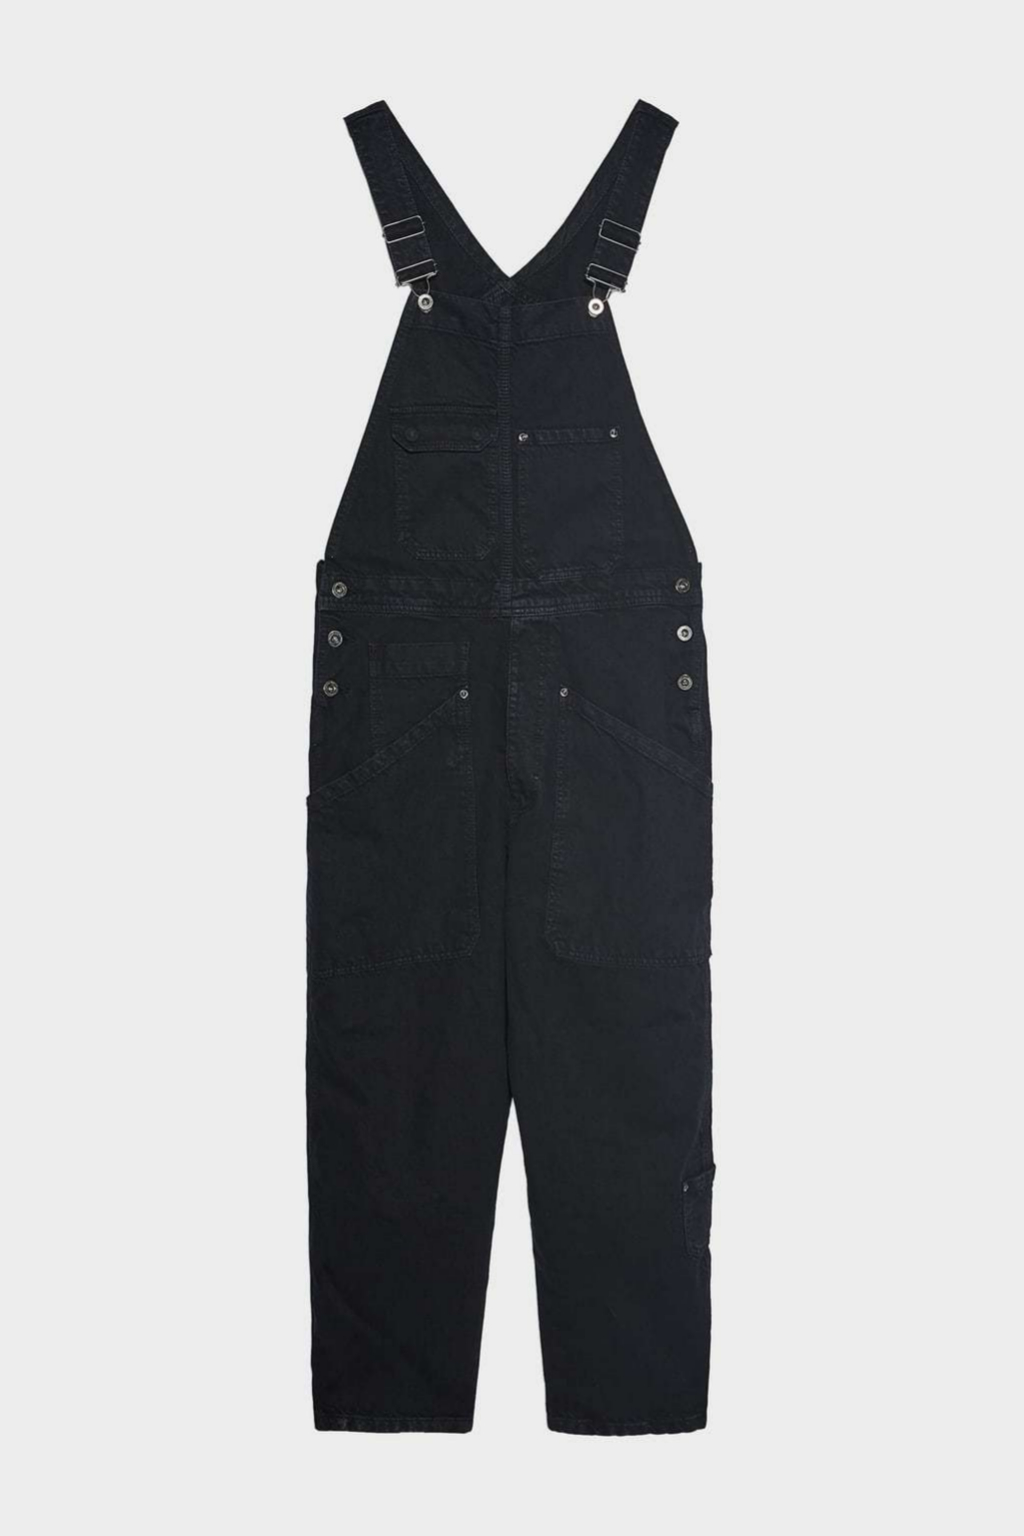 Peto denim tipo worker de Zara